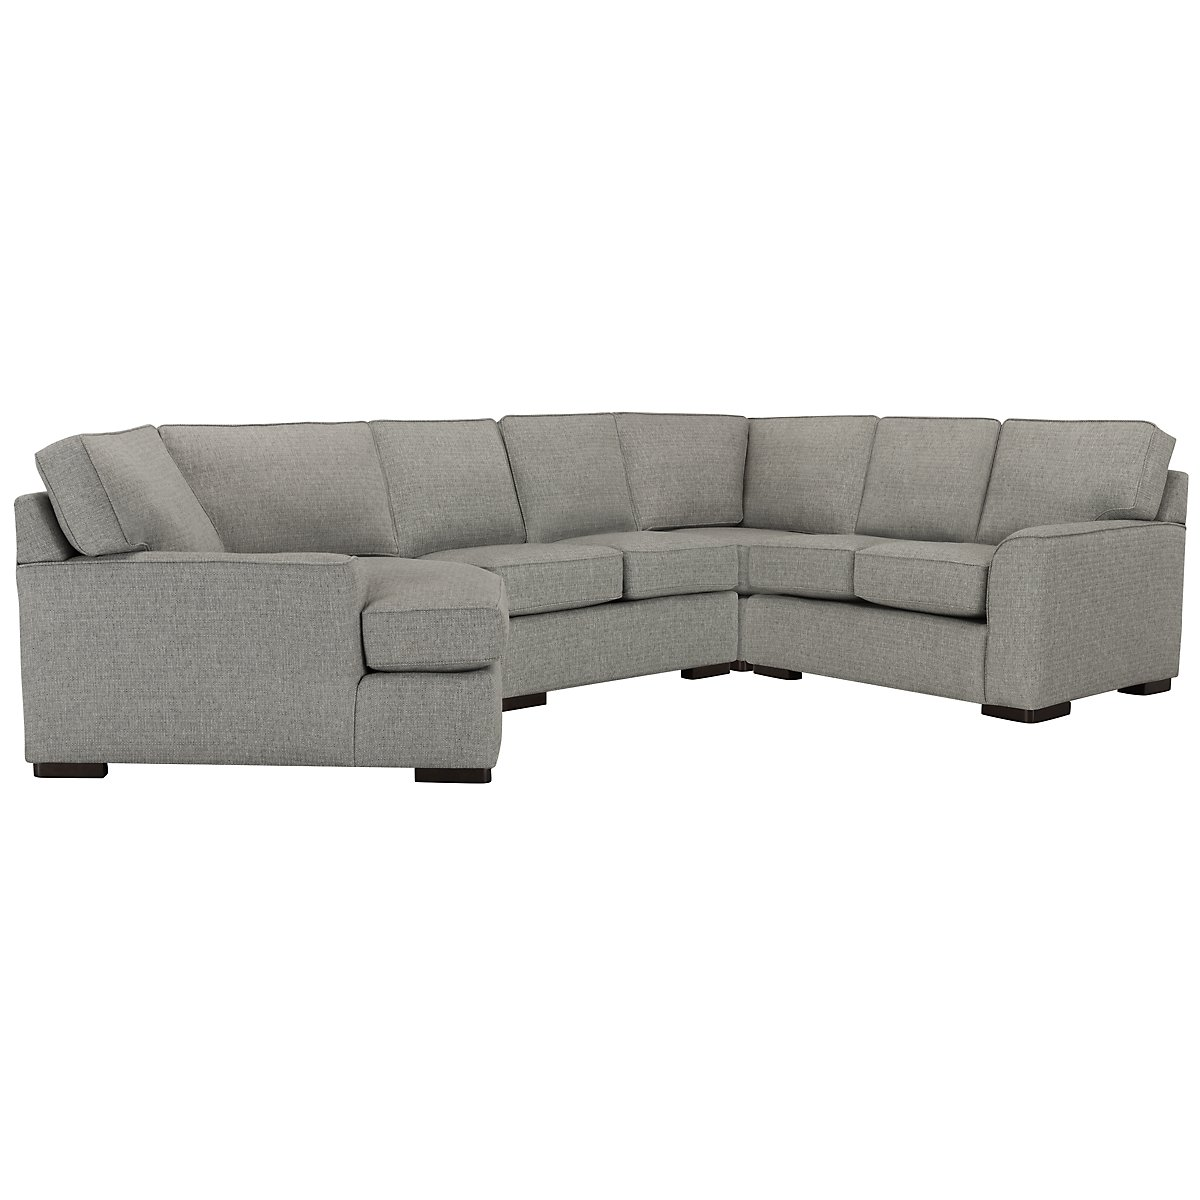 City furniture austin gray fabric small left cuddler for Small sectional sofa with cuddler